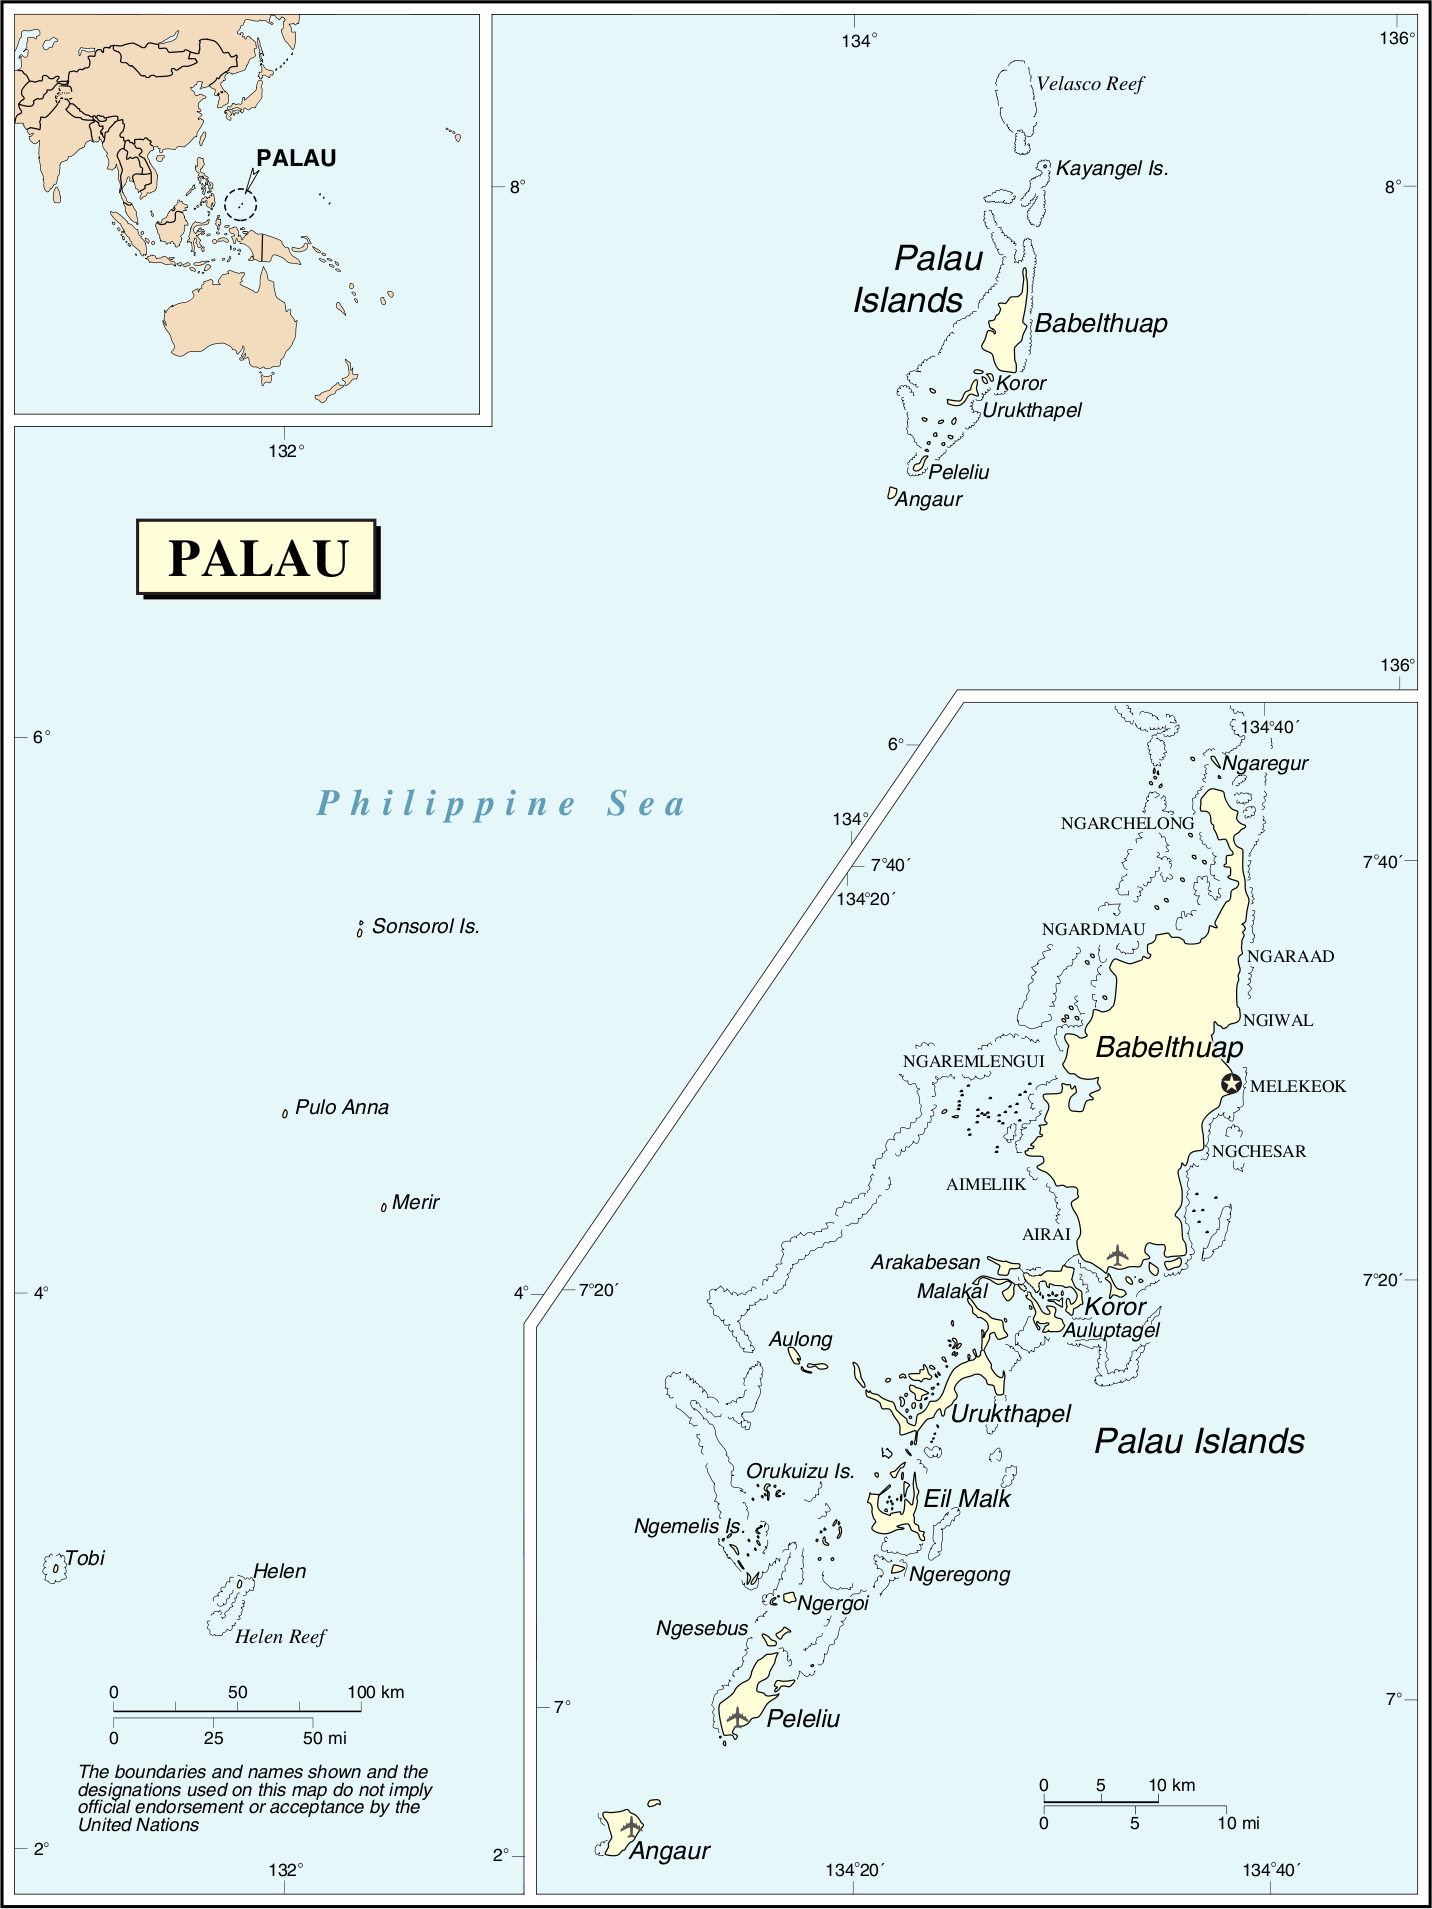 Palau solar SunRunr project